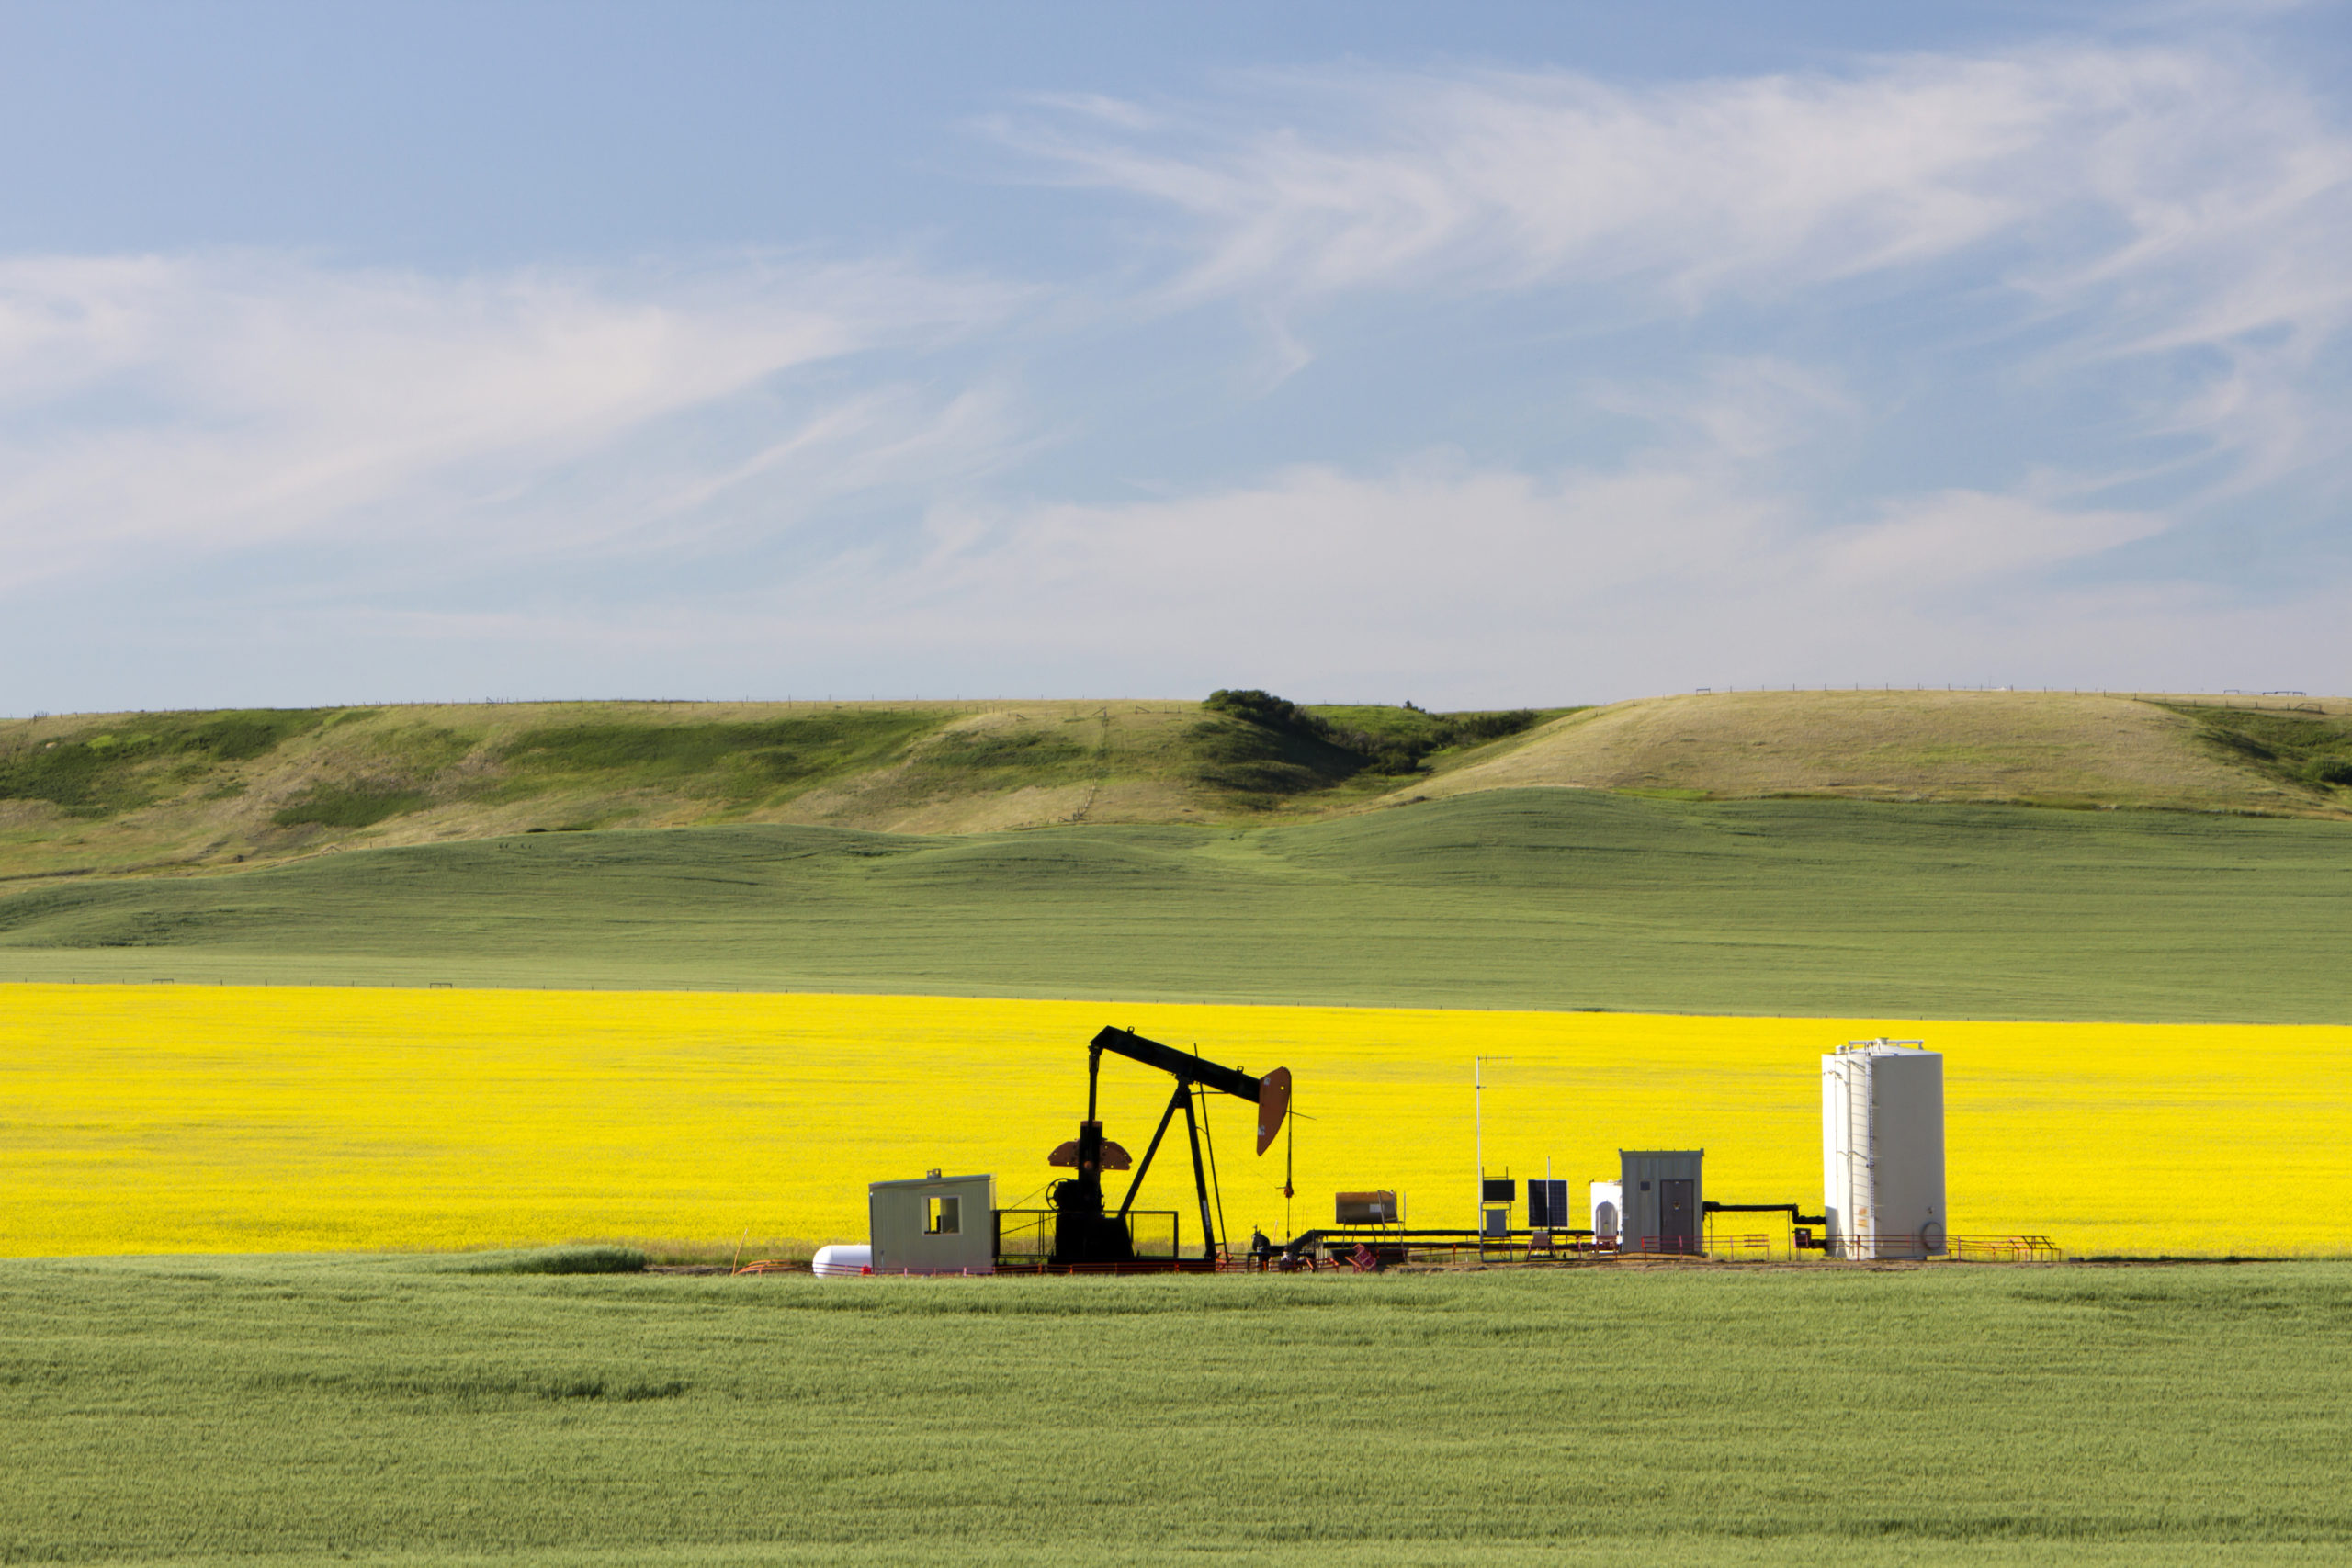 Canada's oil and gas industry recovery will take two years, analysts say